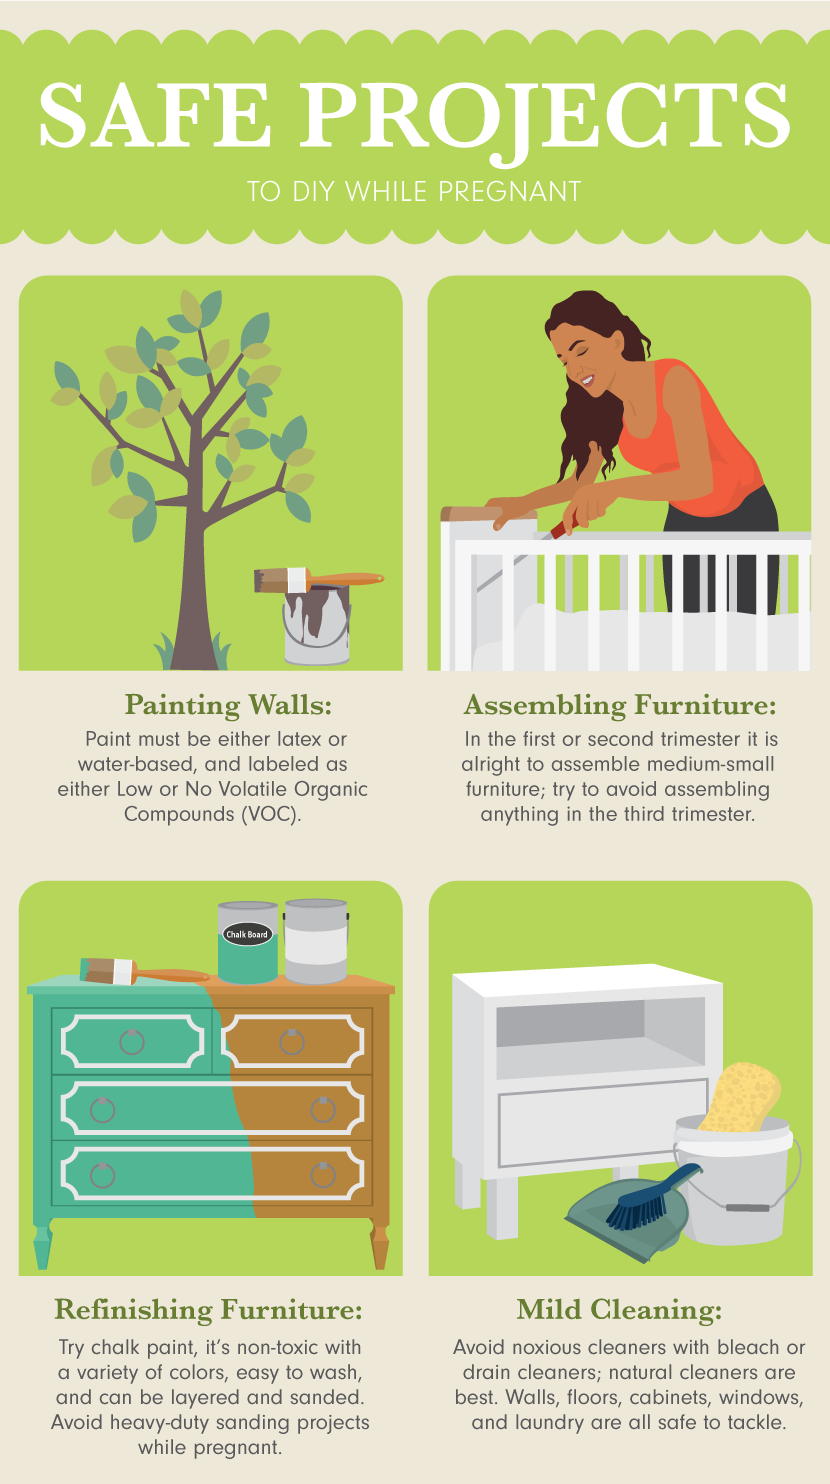 DIY Projects to Avoid While Pregnant | Fix com